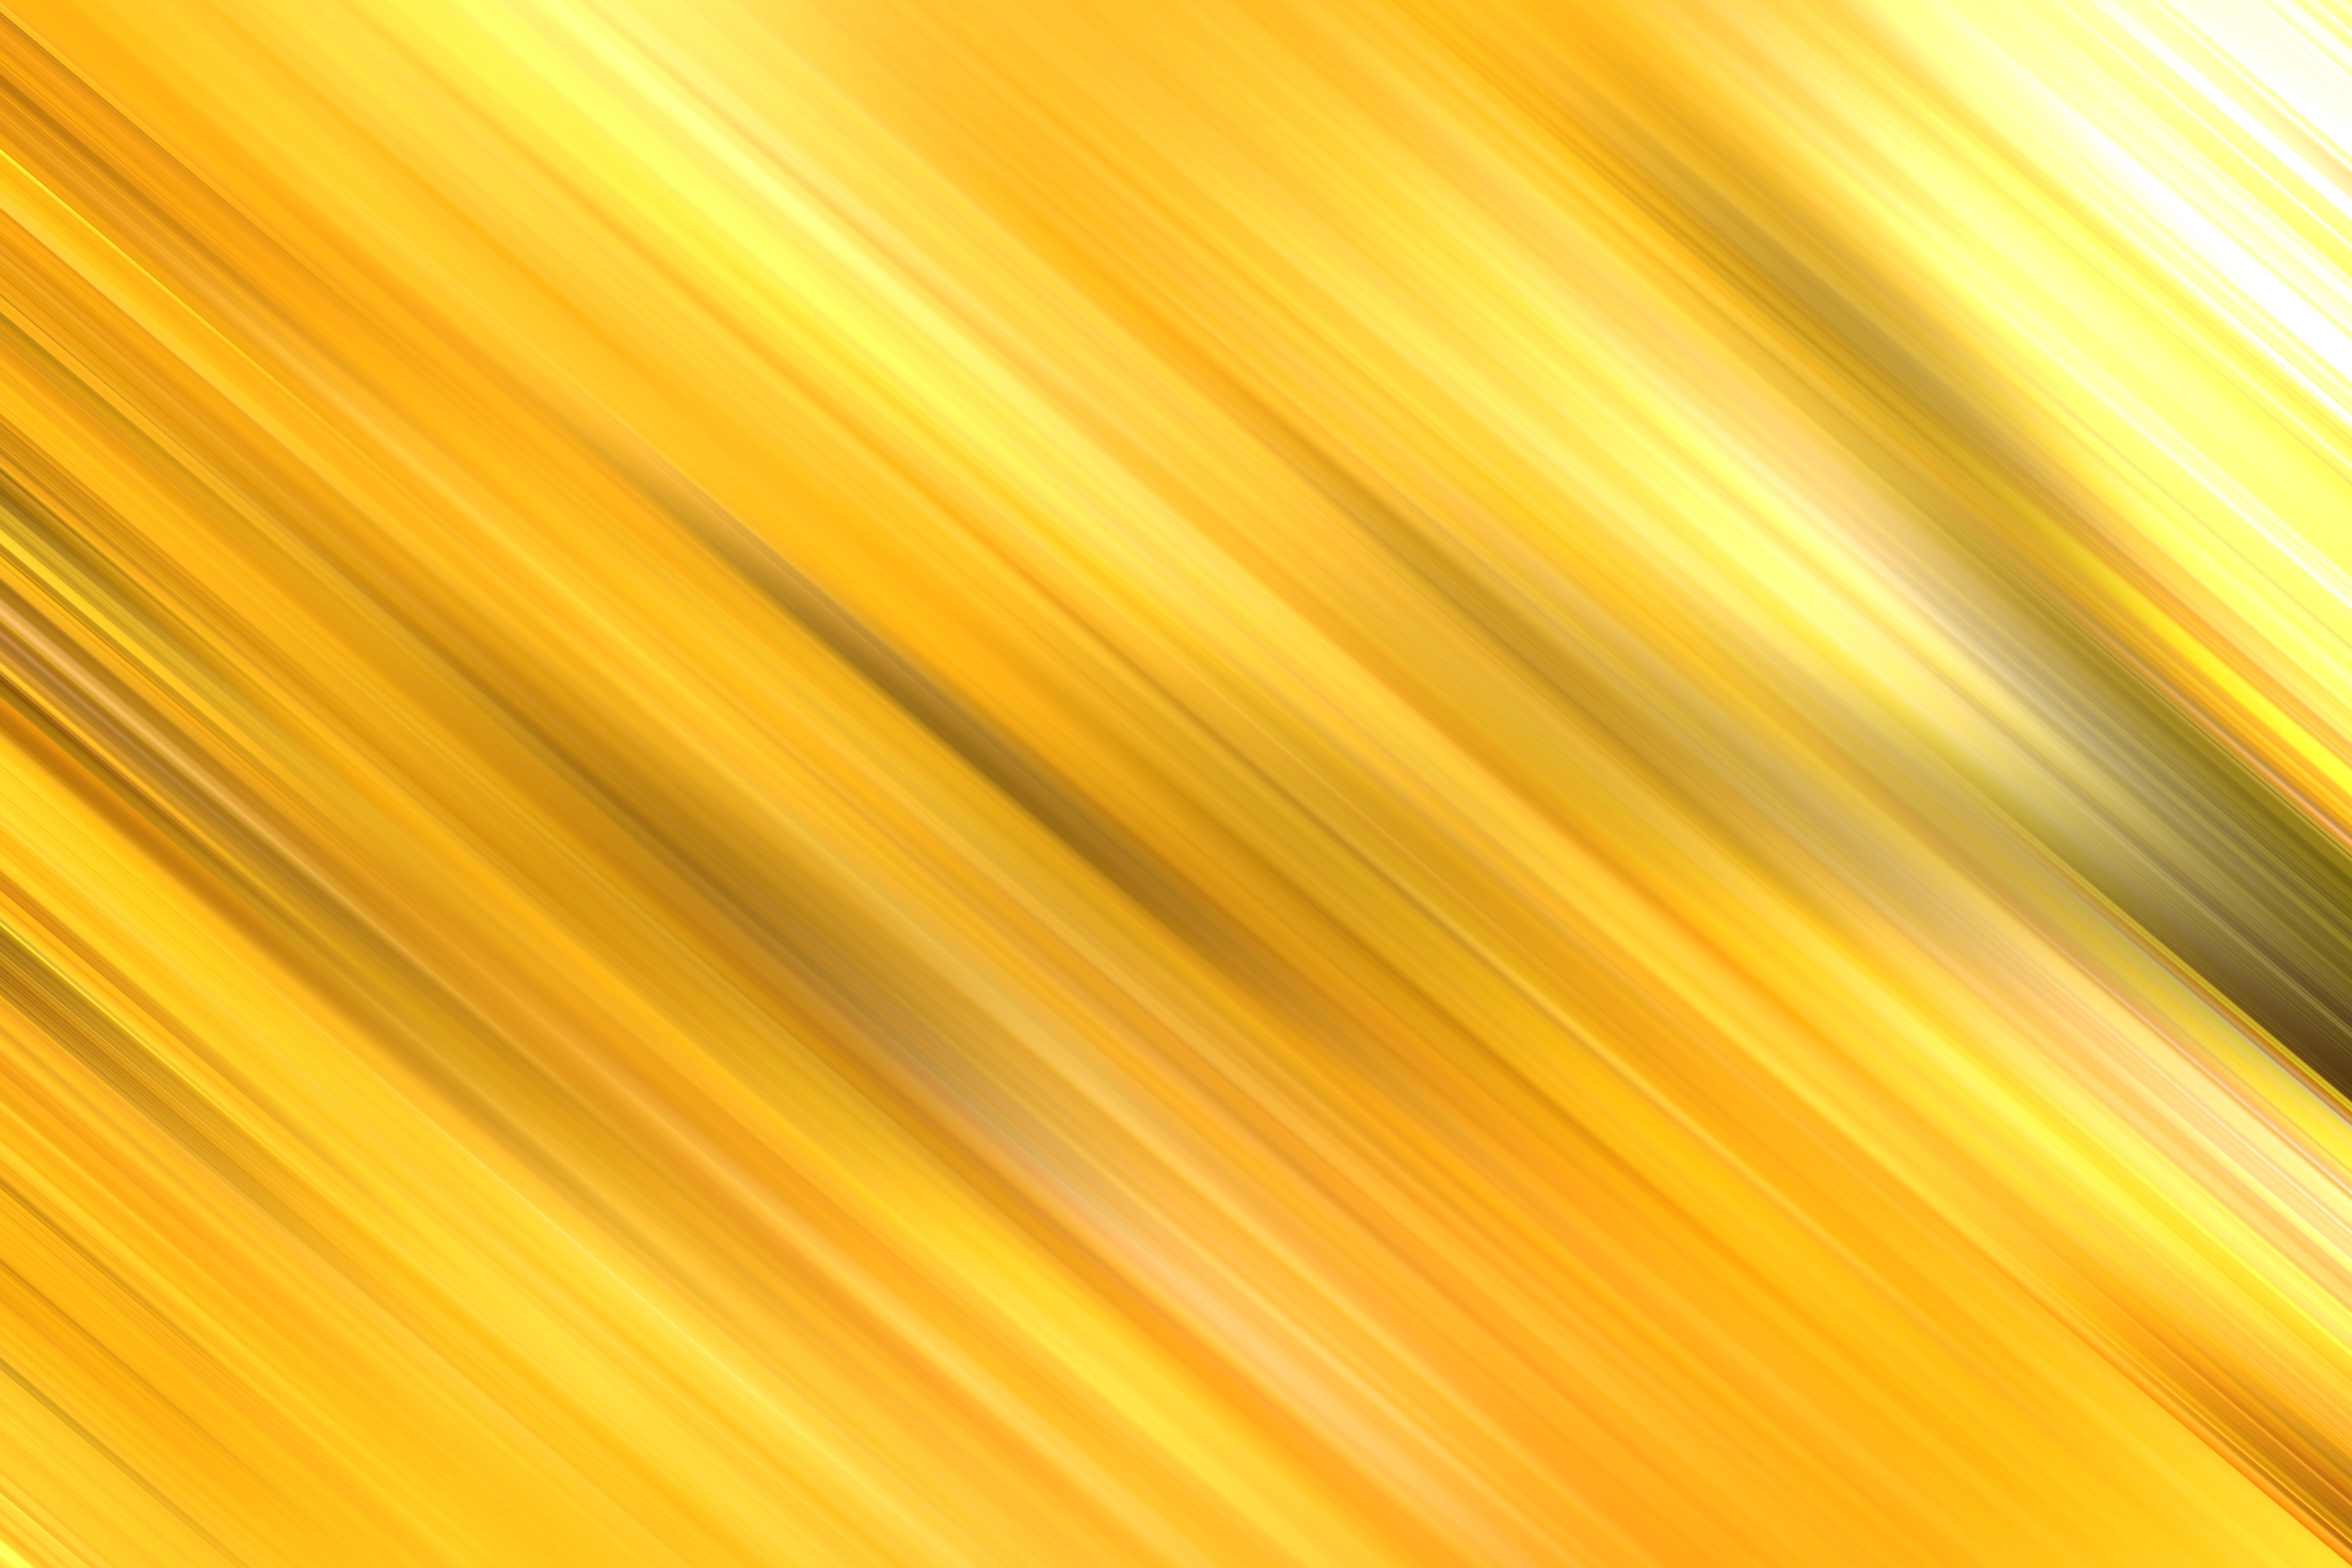 blurred-background_7Jb2YW